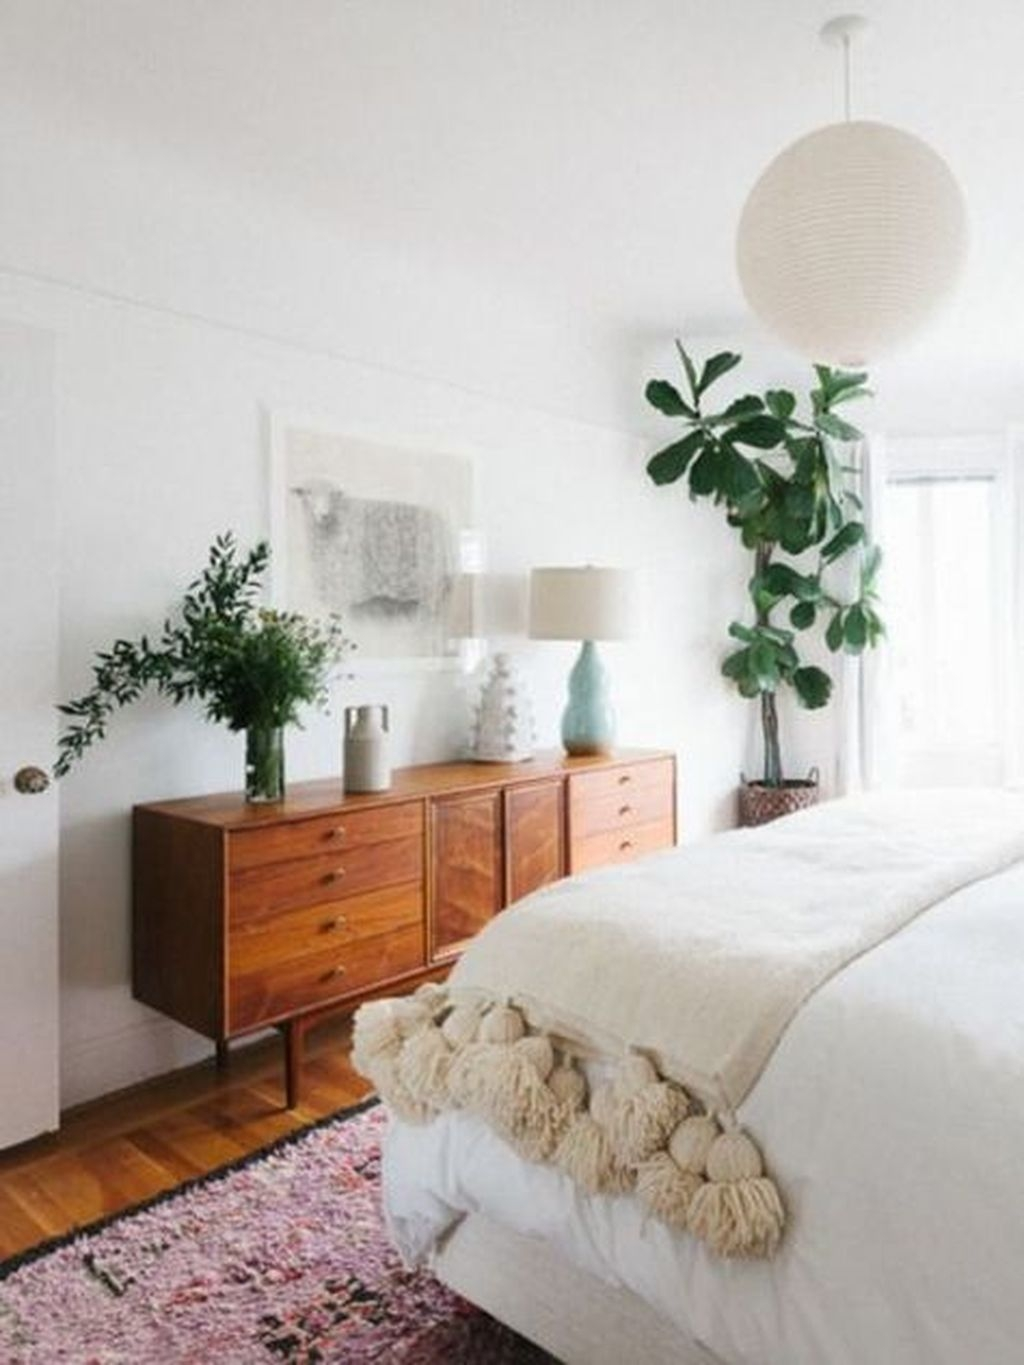 Minimalist Scandinavian Bedroom Decor Ideas 30